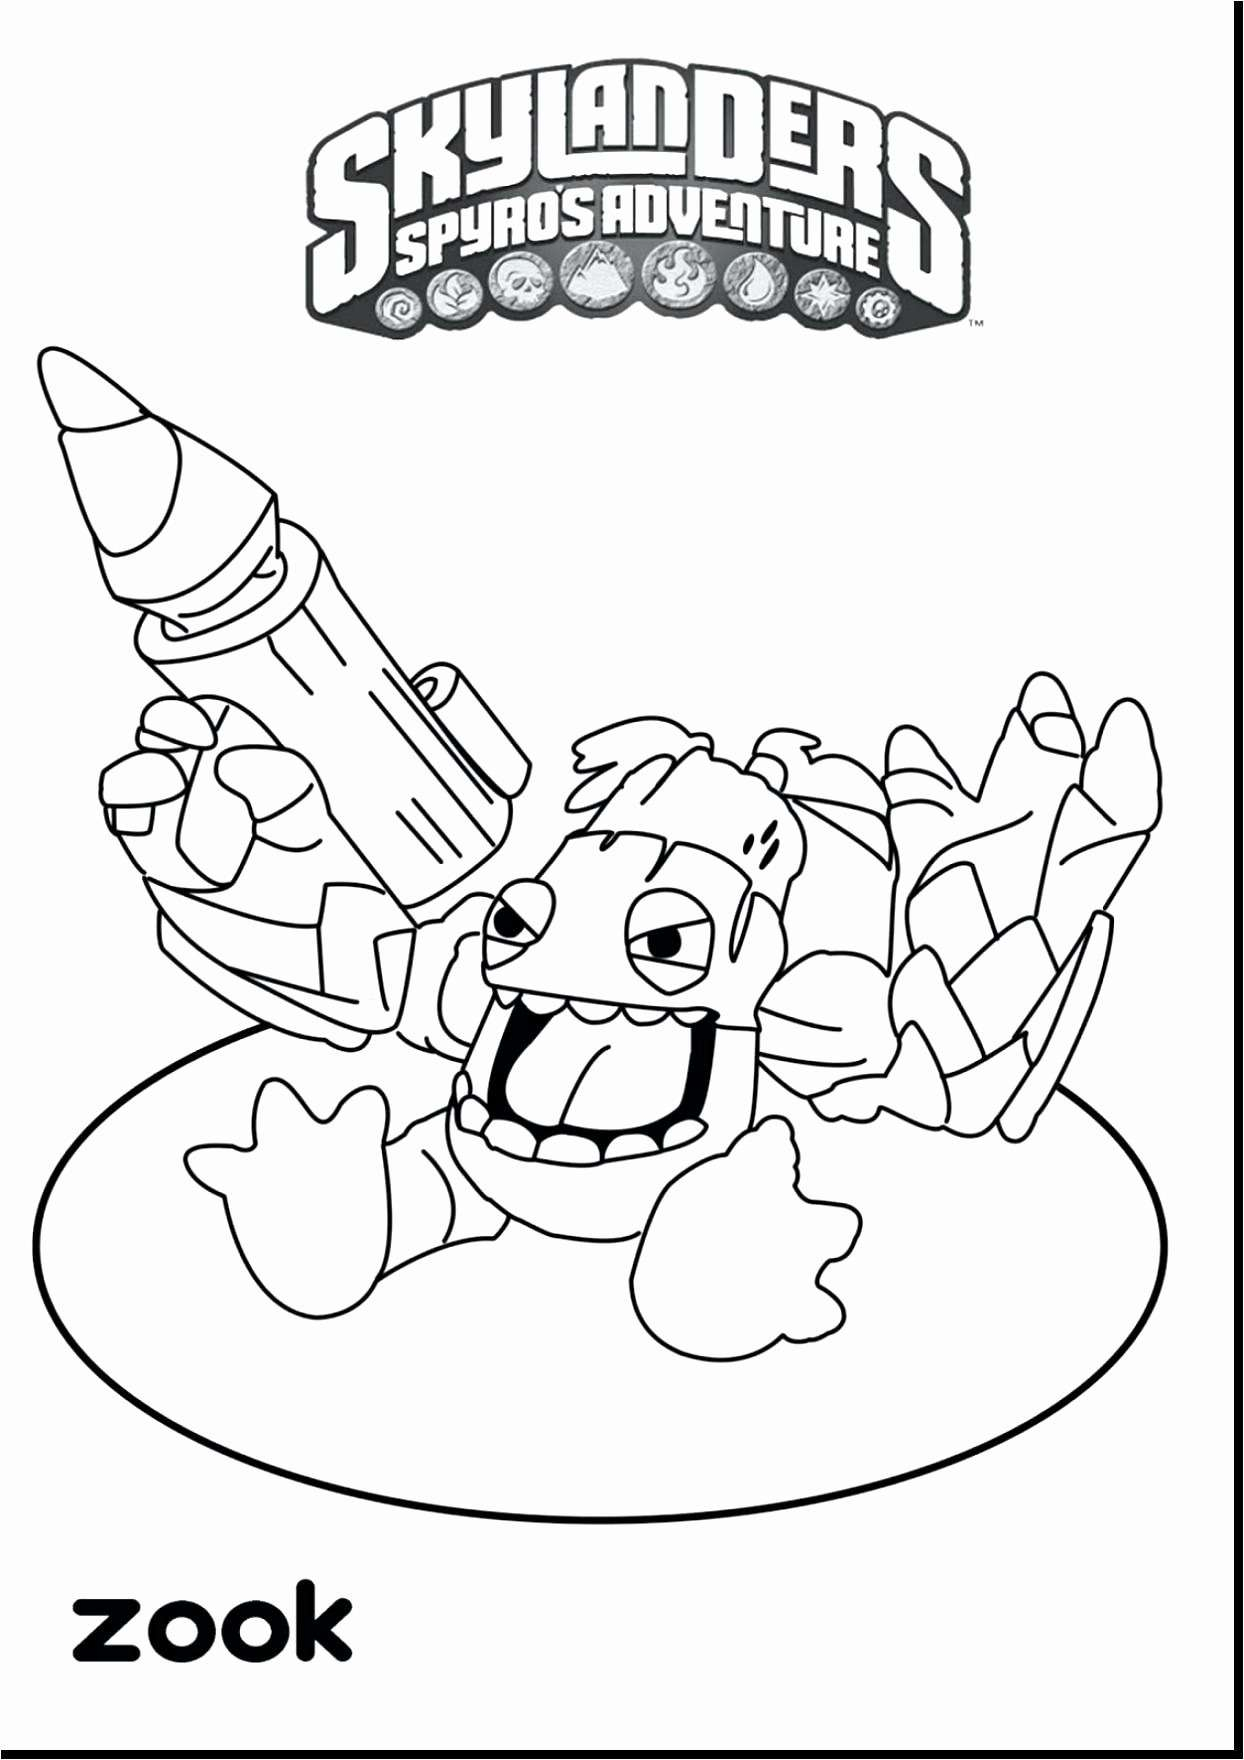 breast cancer coloring pages Collection-Printable Xmas Coloring Pages 19-f